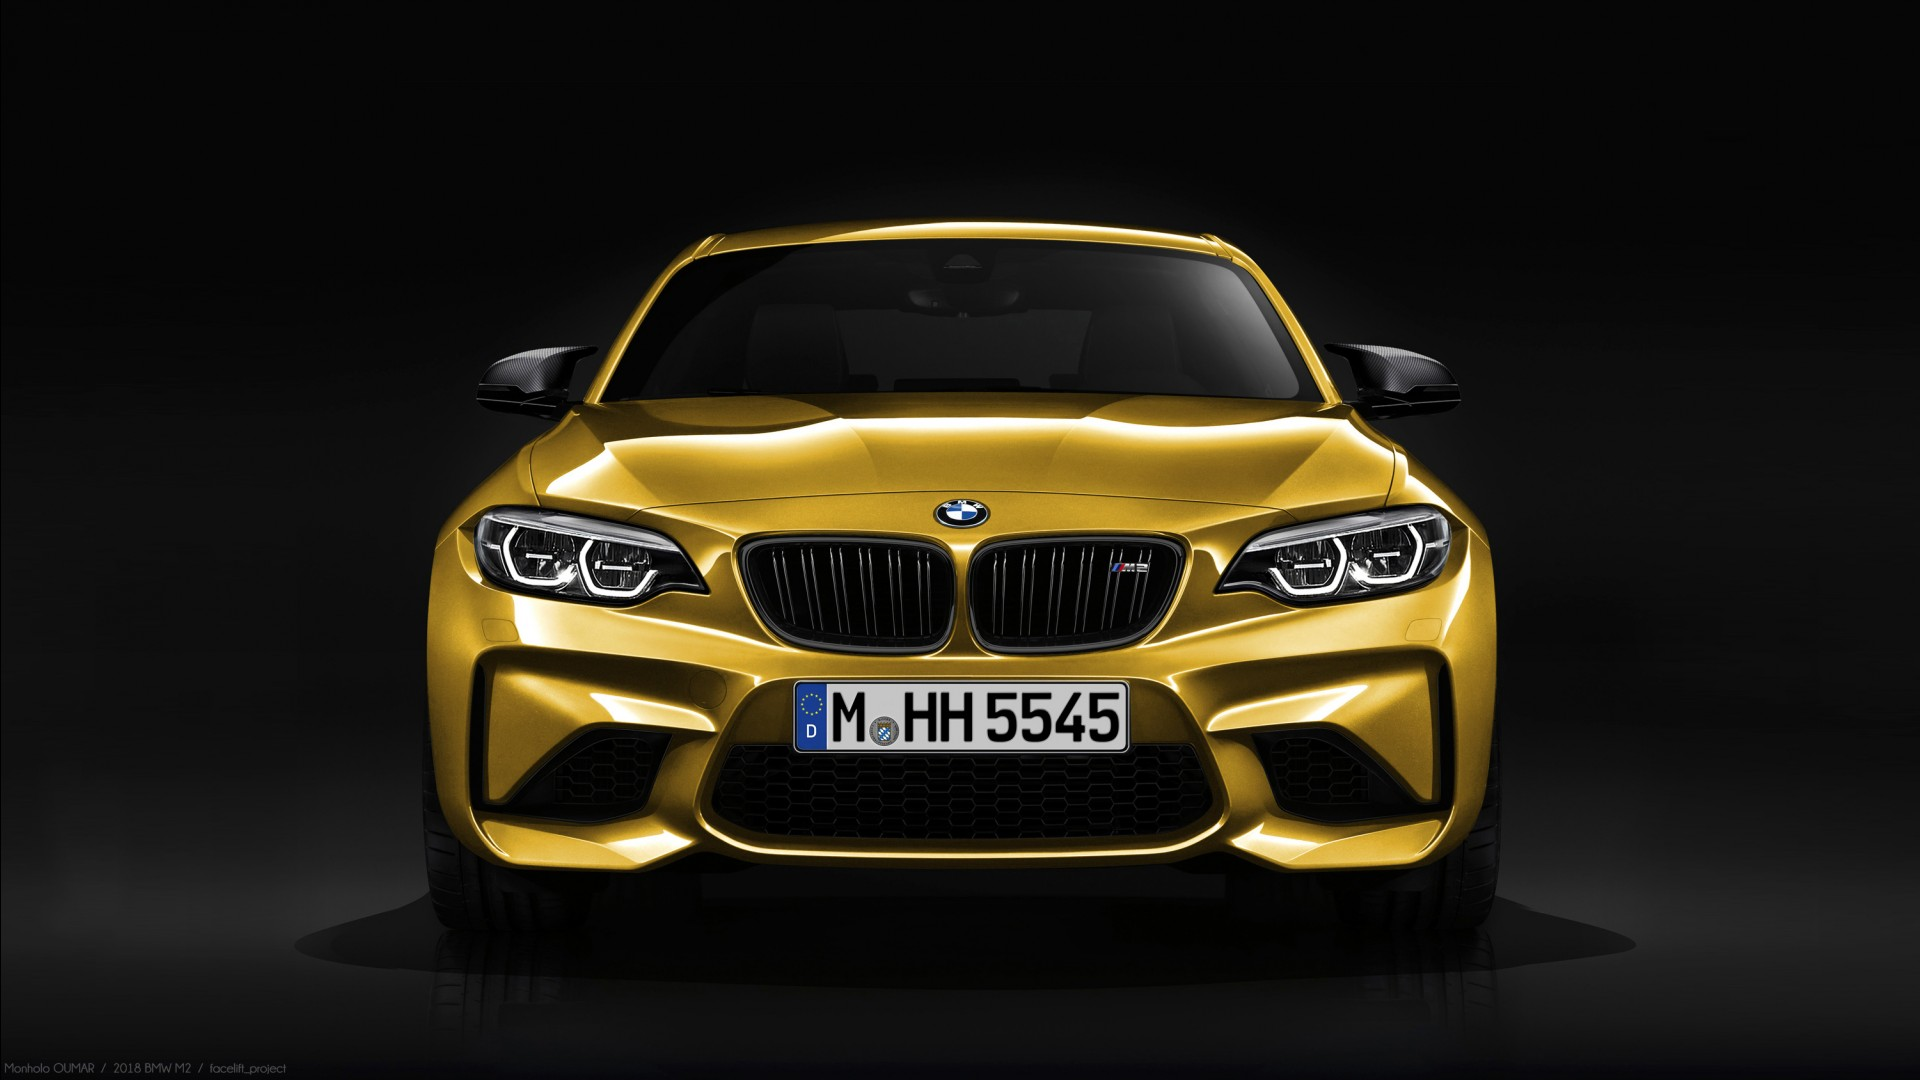 Bmw 5 Series Wallpaper Iphone 2018 Bmw M2 Facelift Wallpapers Hd Wallpapers Id 20912